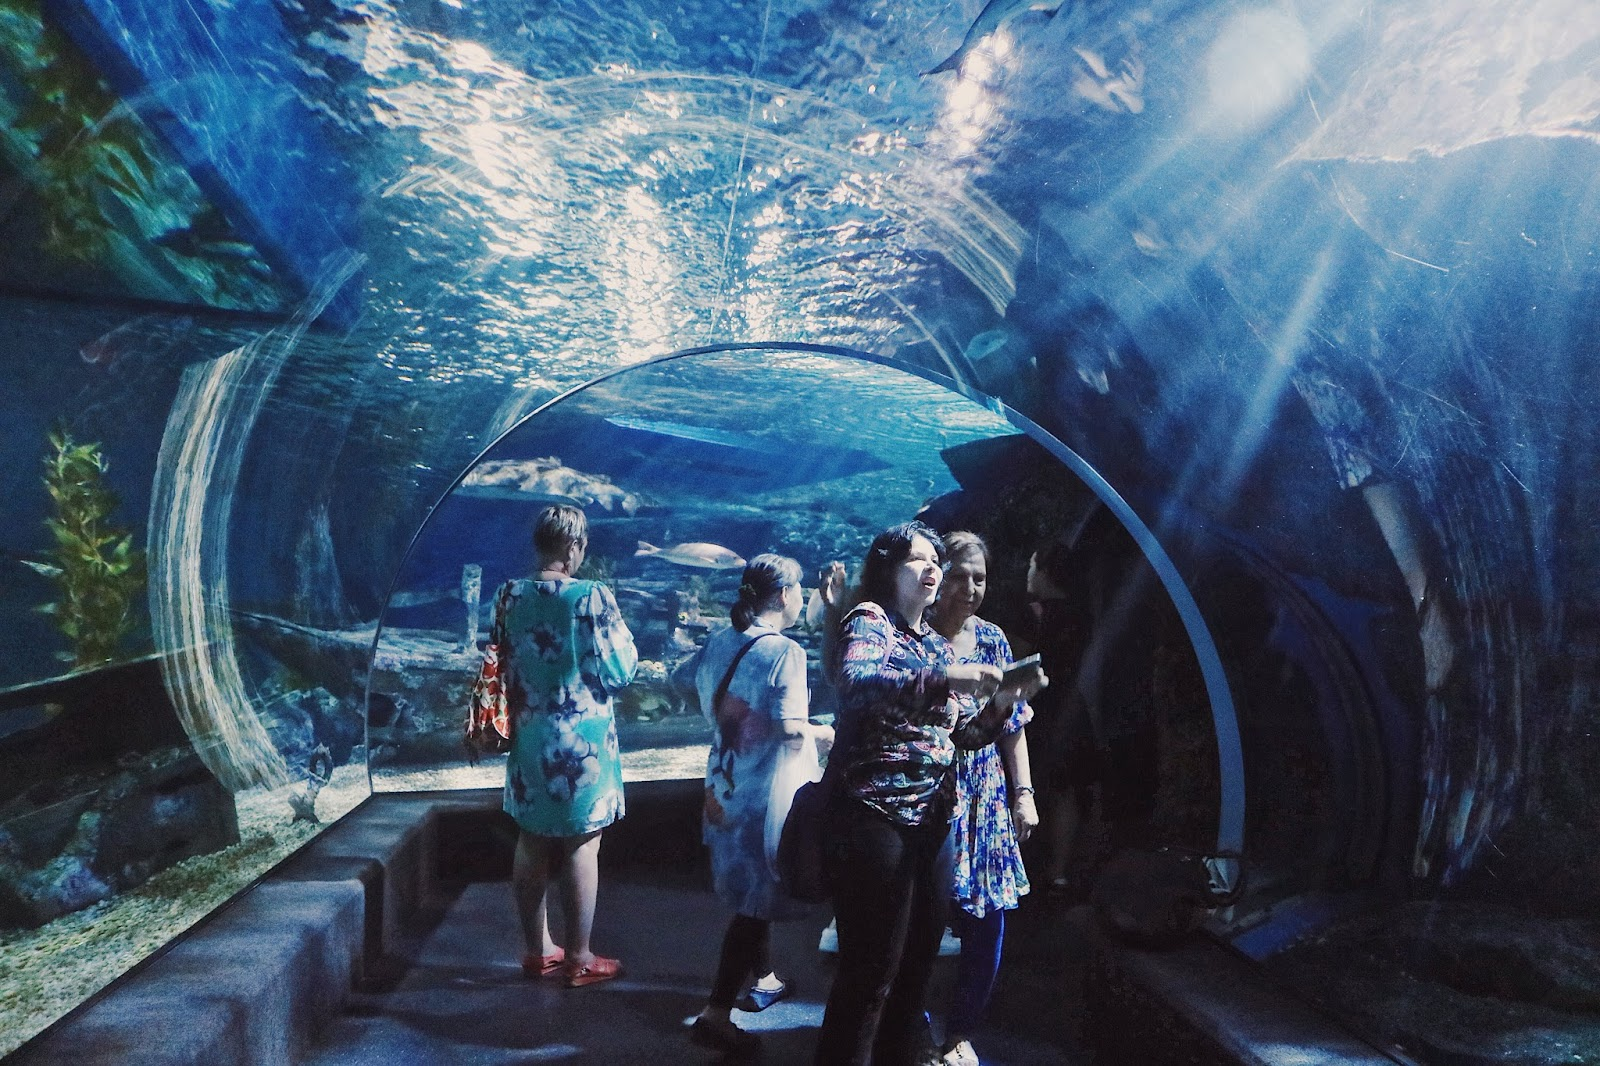 Sea Life Bangkok Ocean World And Khao San Road Living In The Moment Thailand Et Ticket Aquarium Only Child